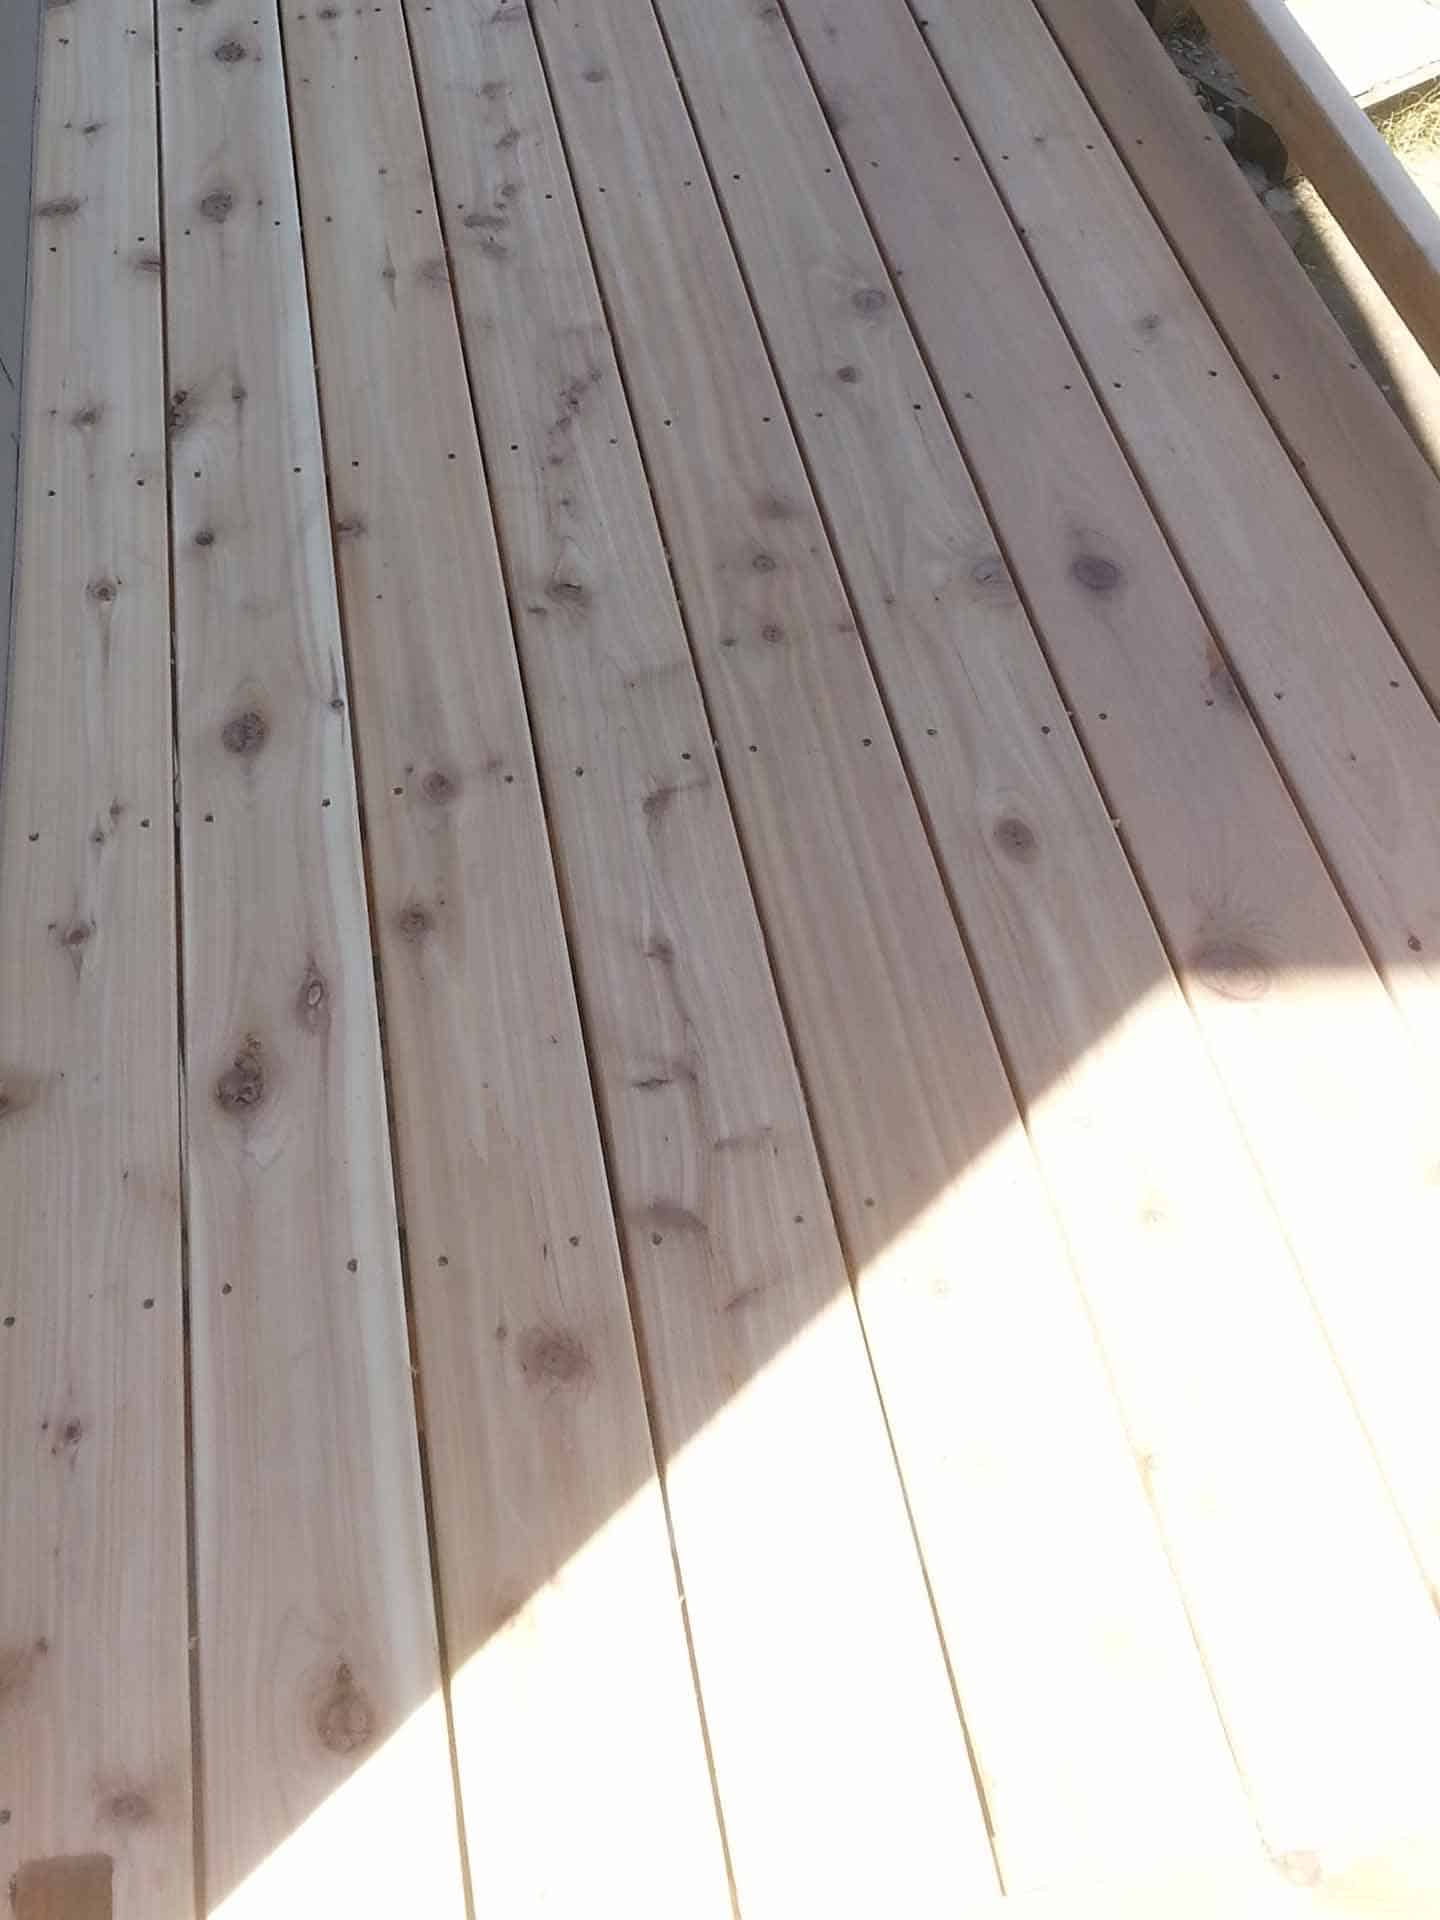 close up of wood decking